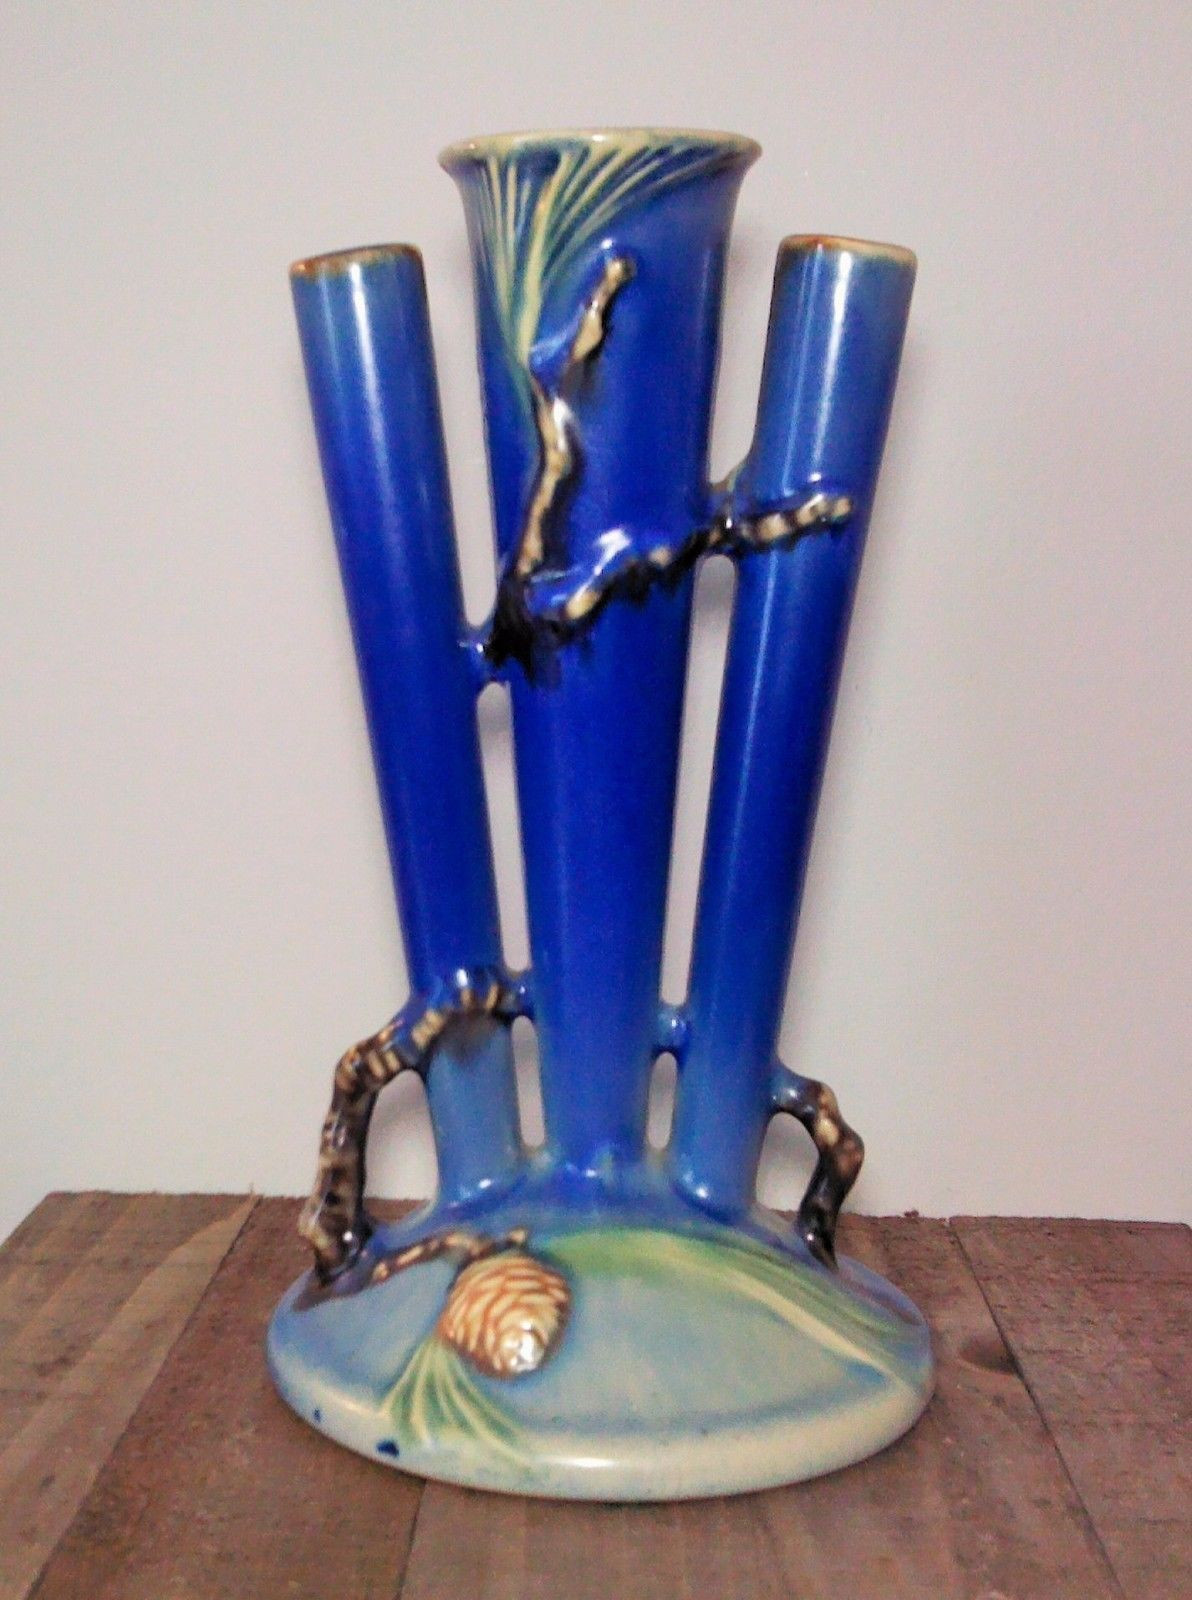 11 Popular Roseville Pottery Vases Value 2021 free download roseville pottery vases value of blue bud vase stock rare roseville blue pine cone triple bud vase in blue bud vase stock rare roseville blue pine cone triple bud vase 113 8 near mint